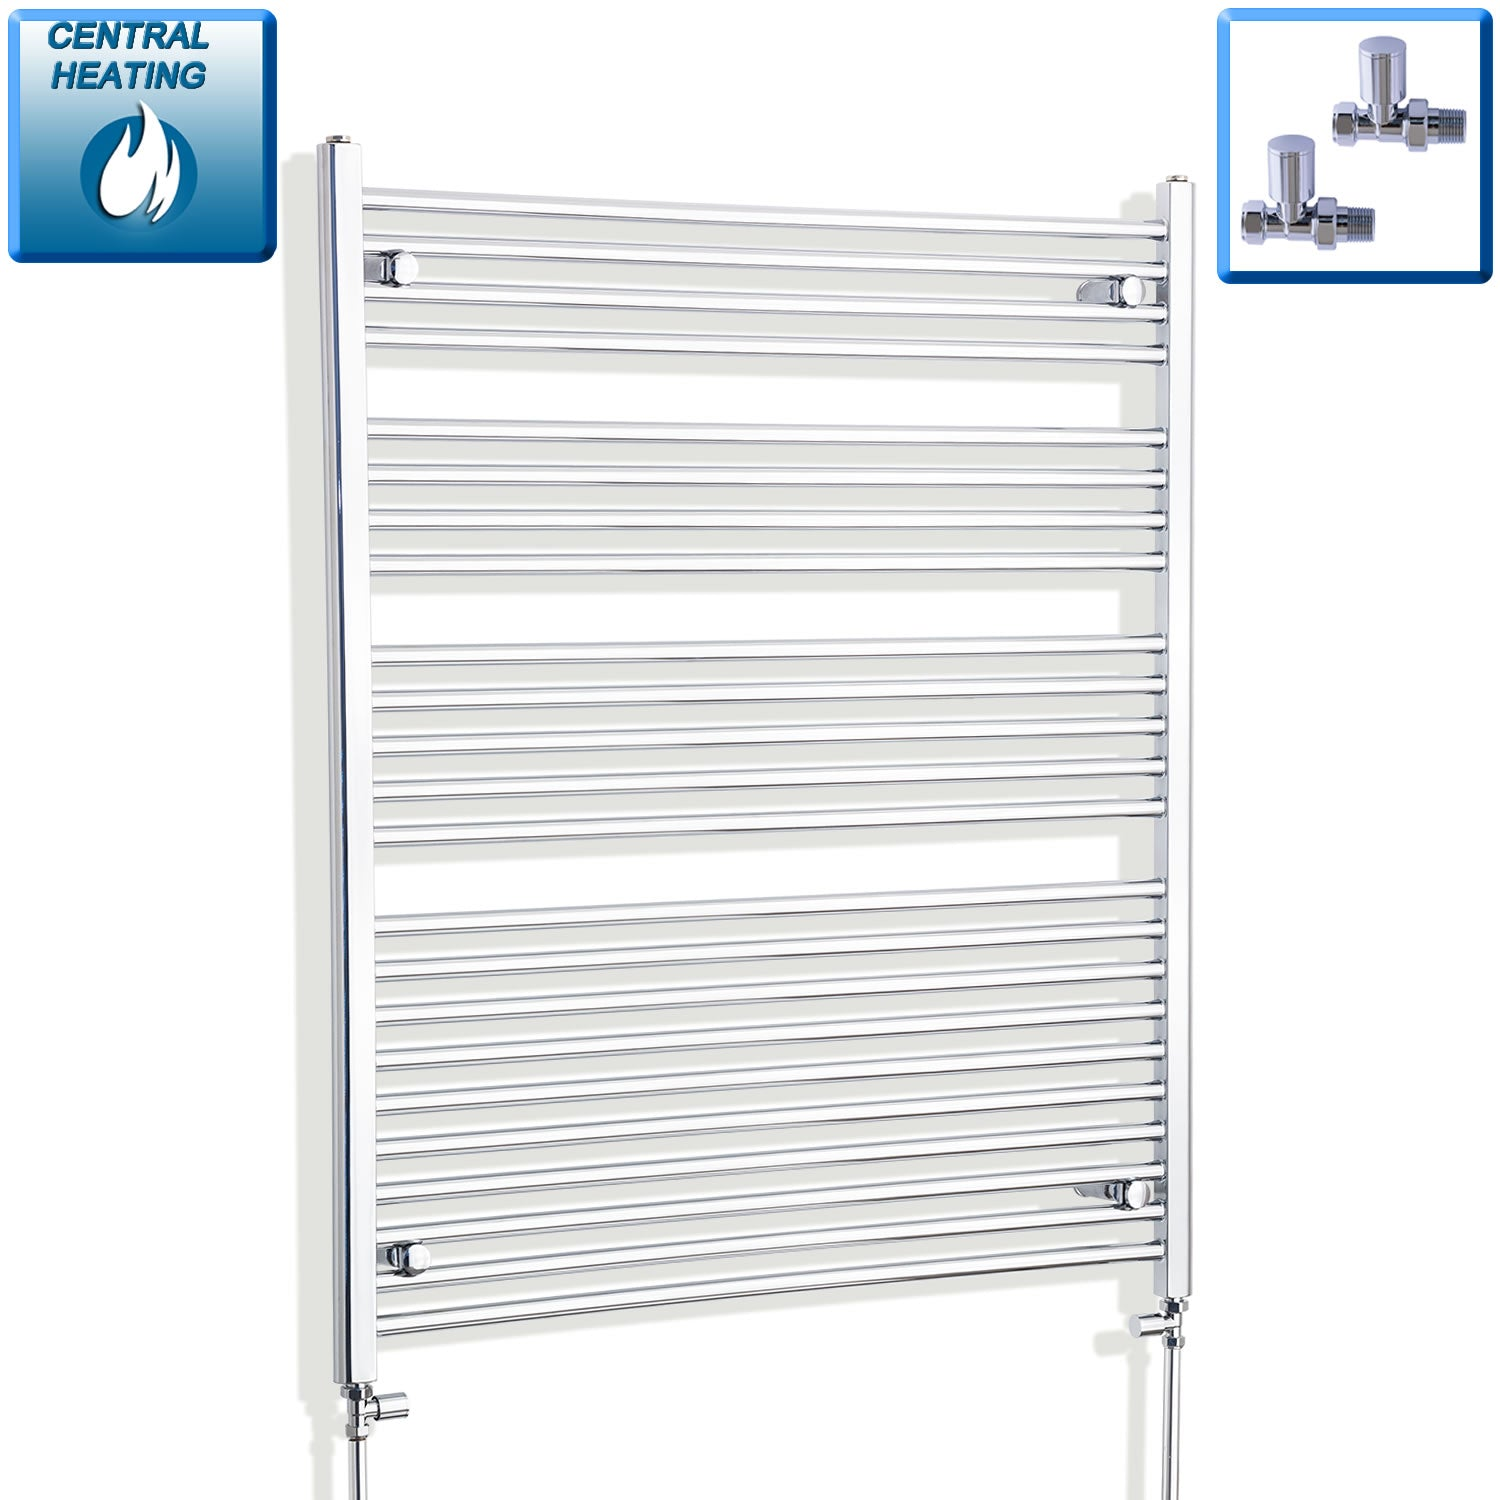 950mm Wide 1200mm High Flat Chrome Heated Towel Rail Radiator HTR,Towel Rail Only